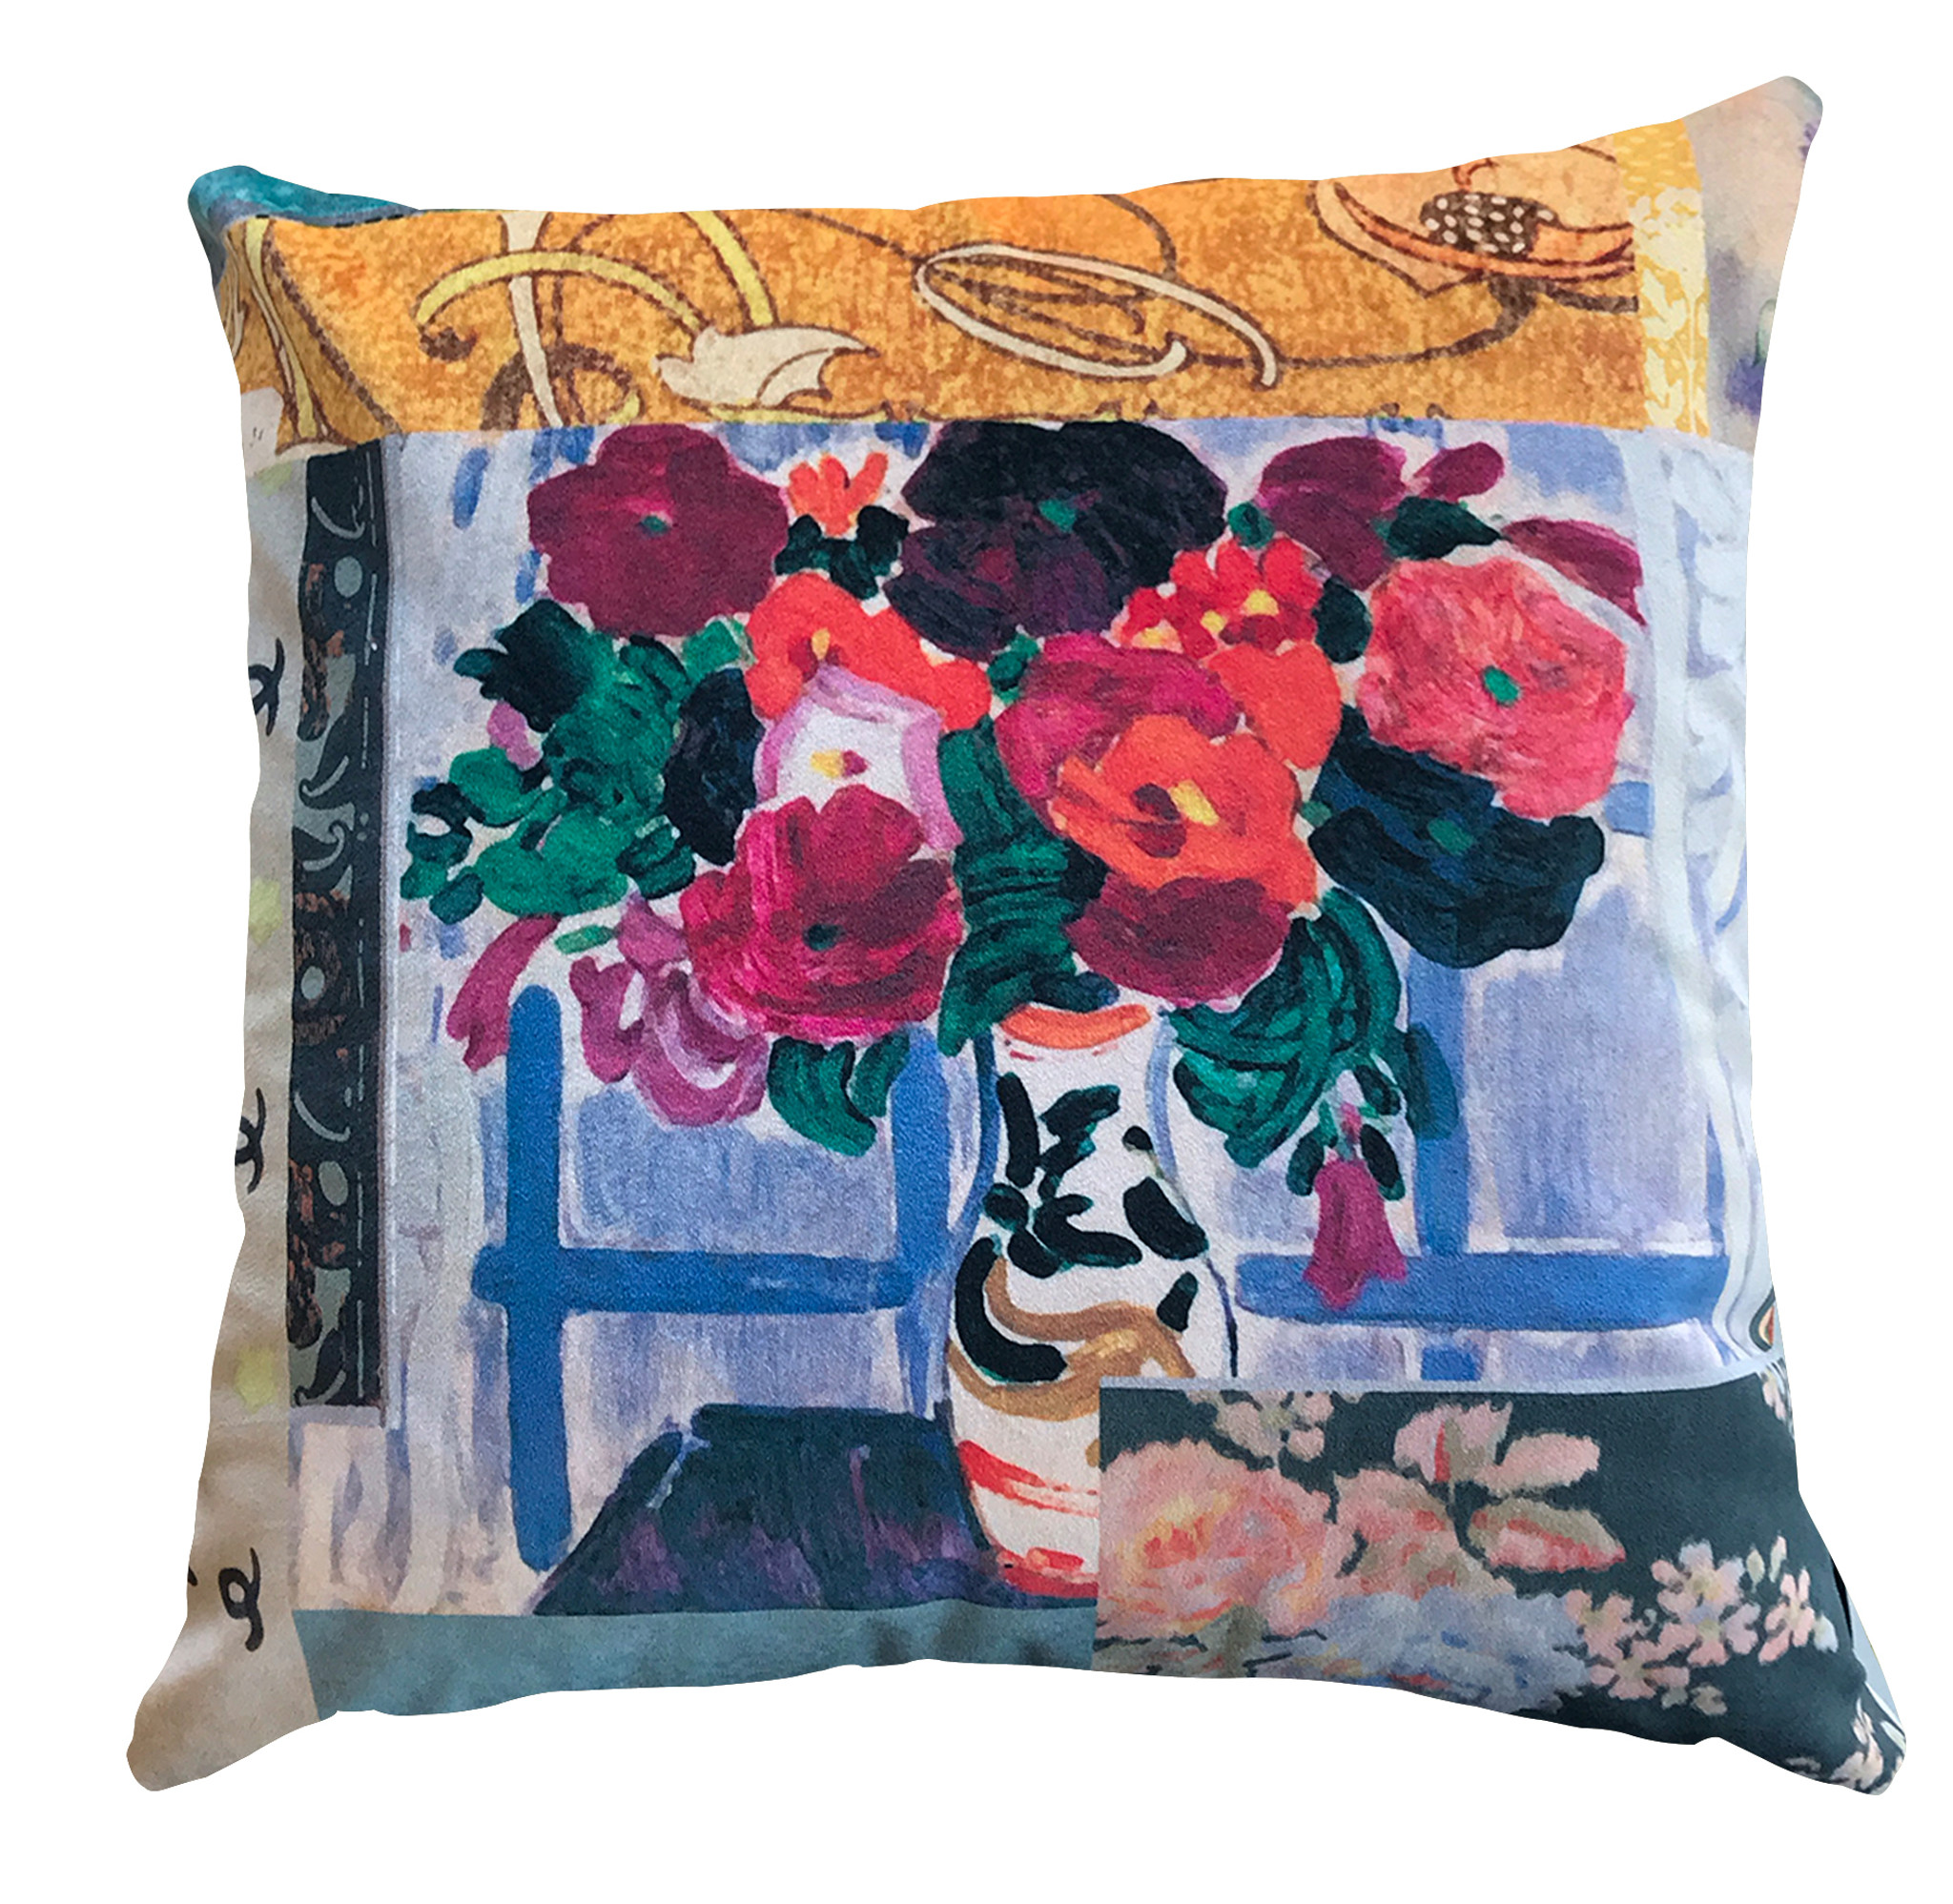 Cushion - Modigliani Was Here - Flowers in Vase